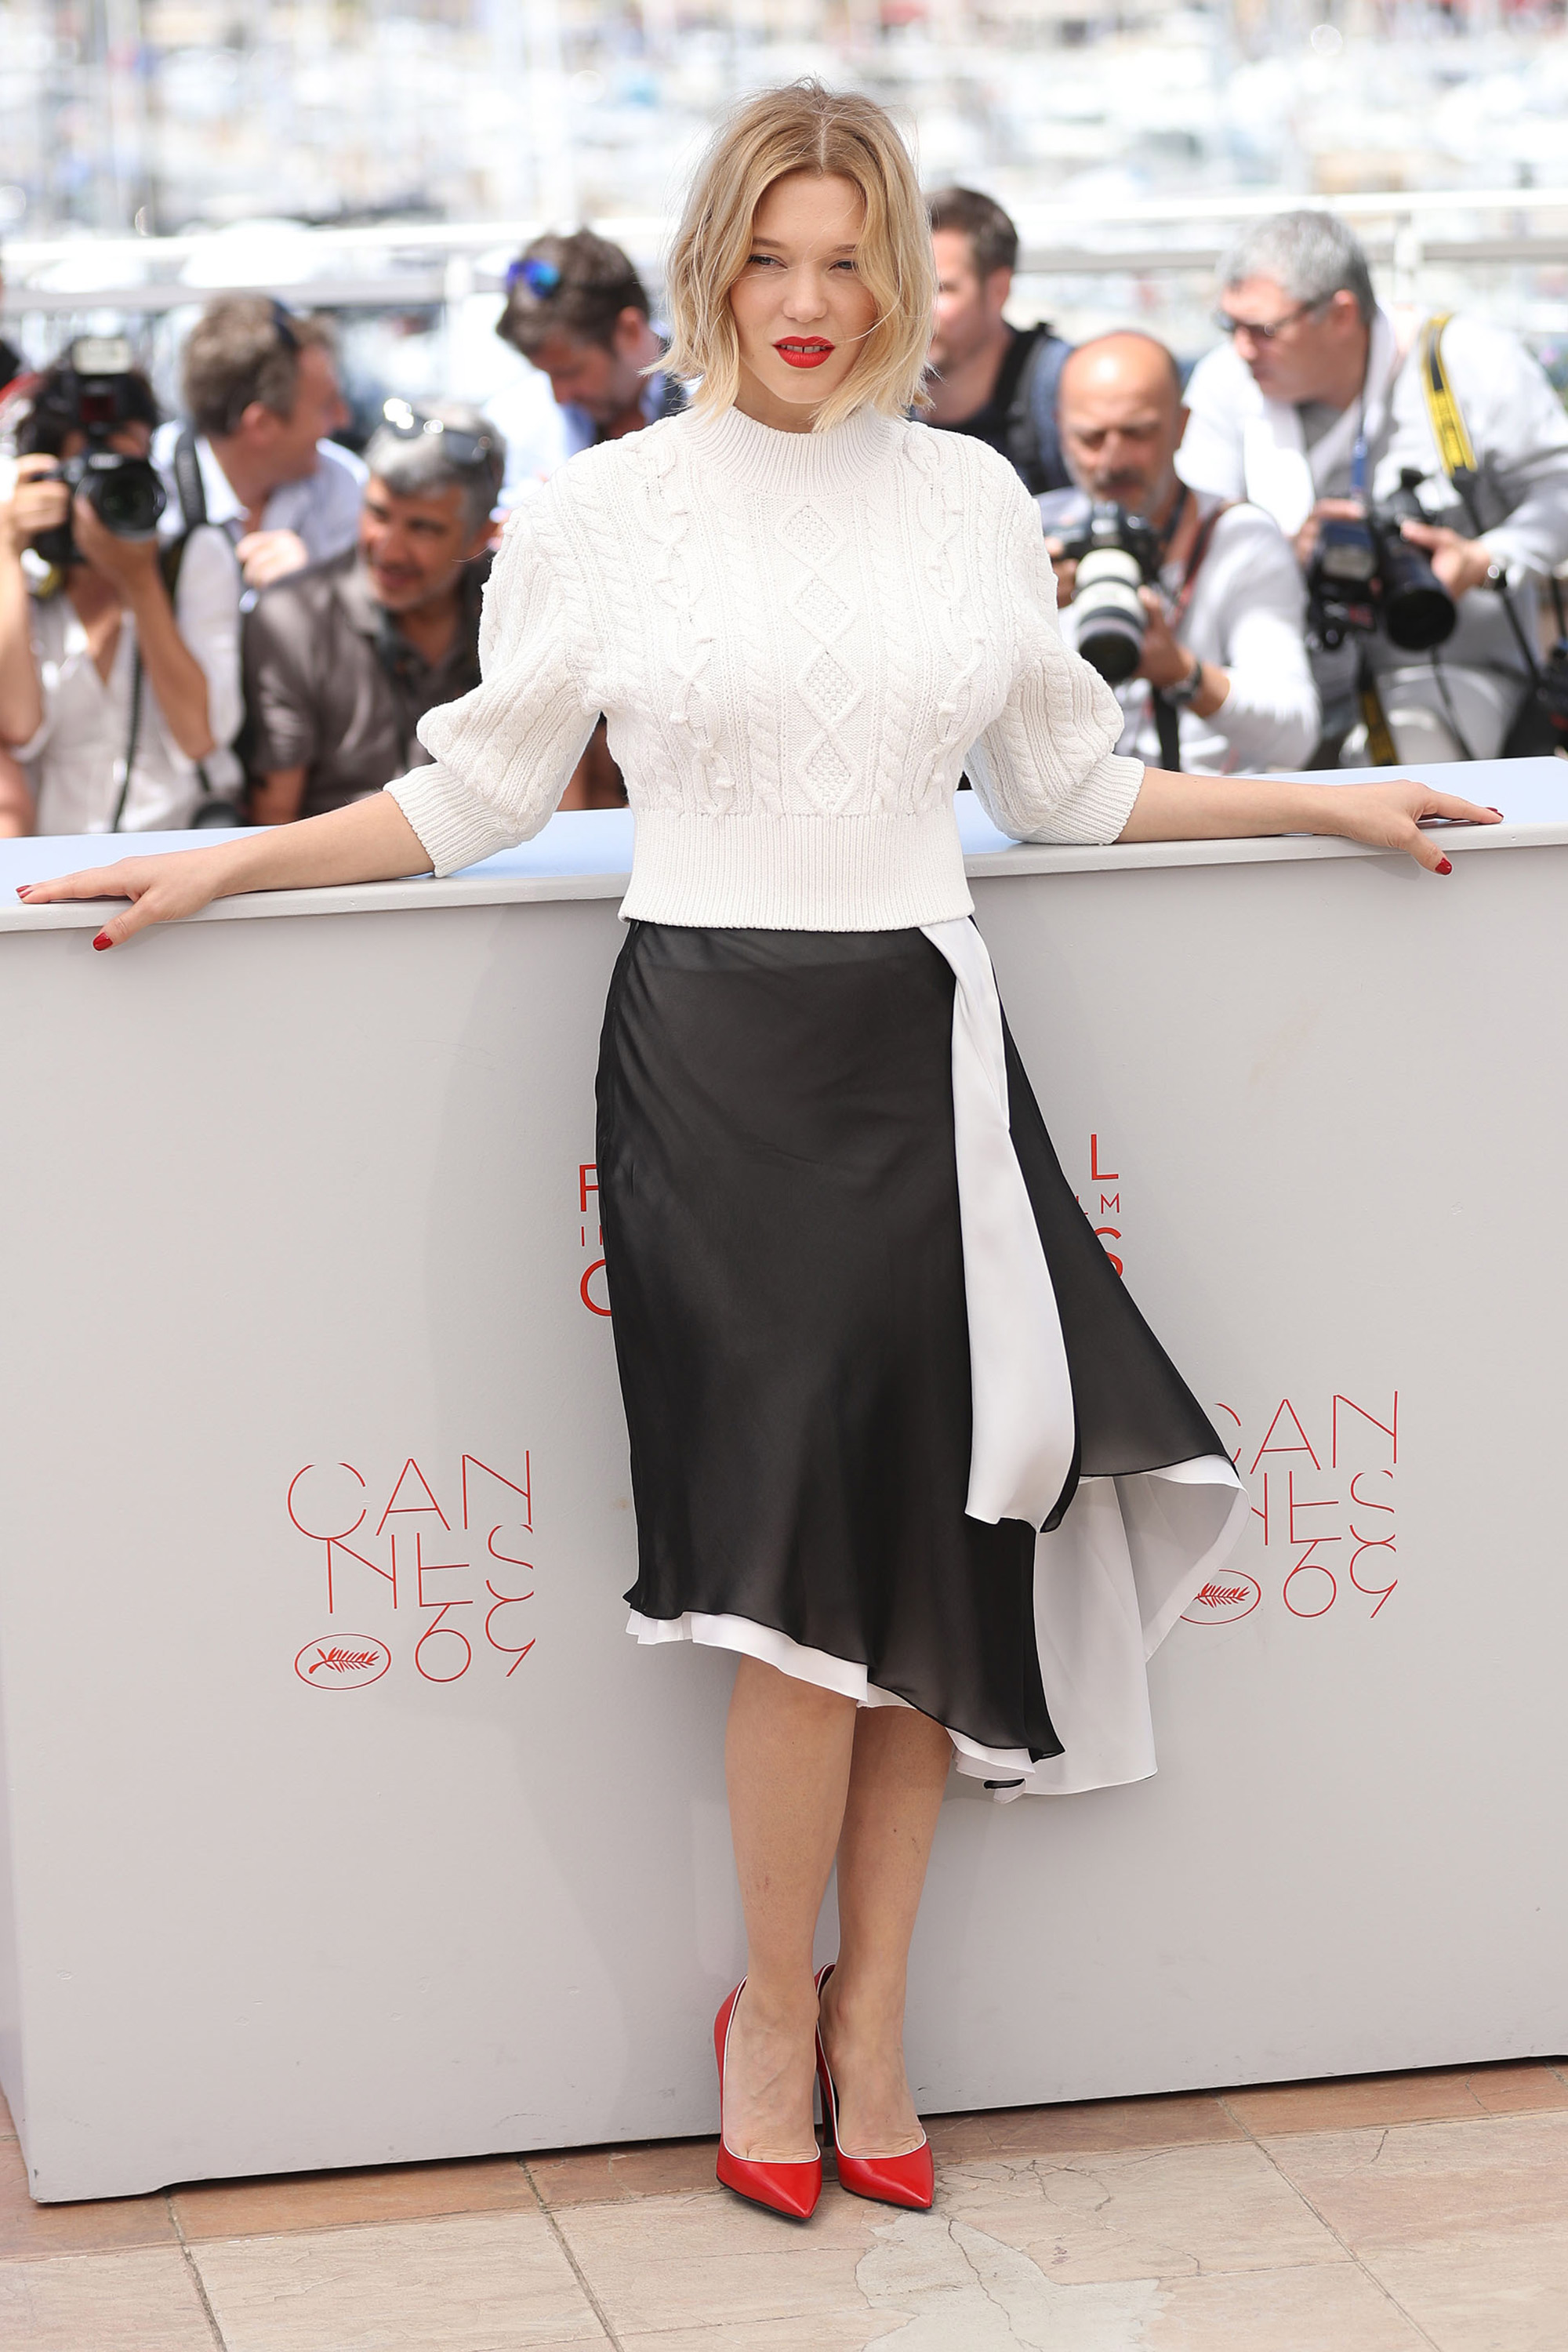 The Cannes Film Festival 2016